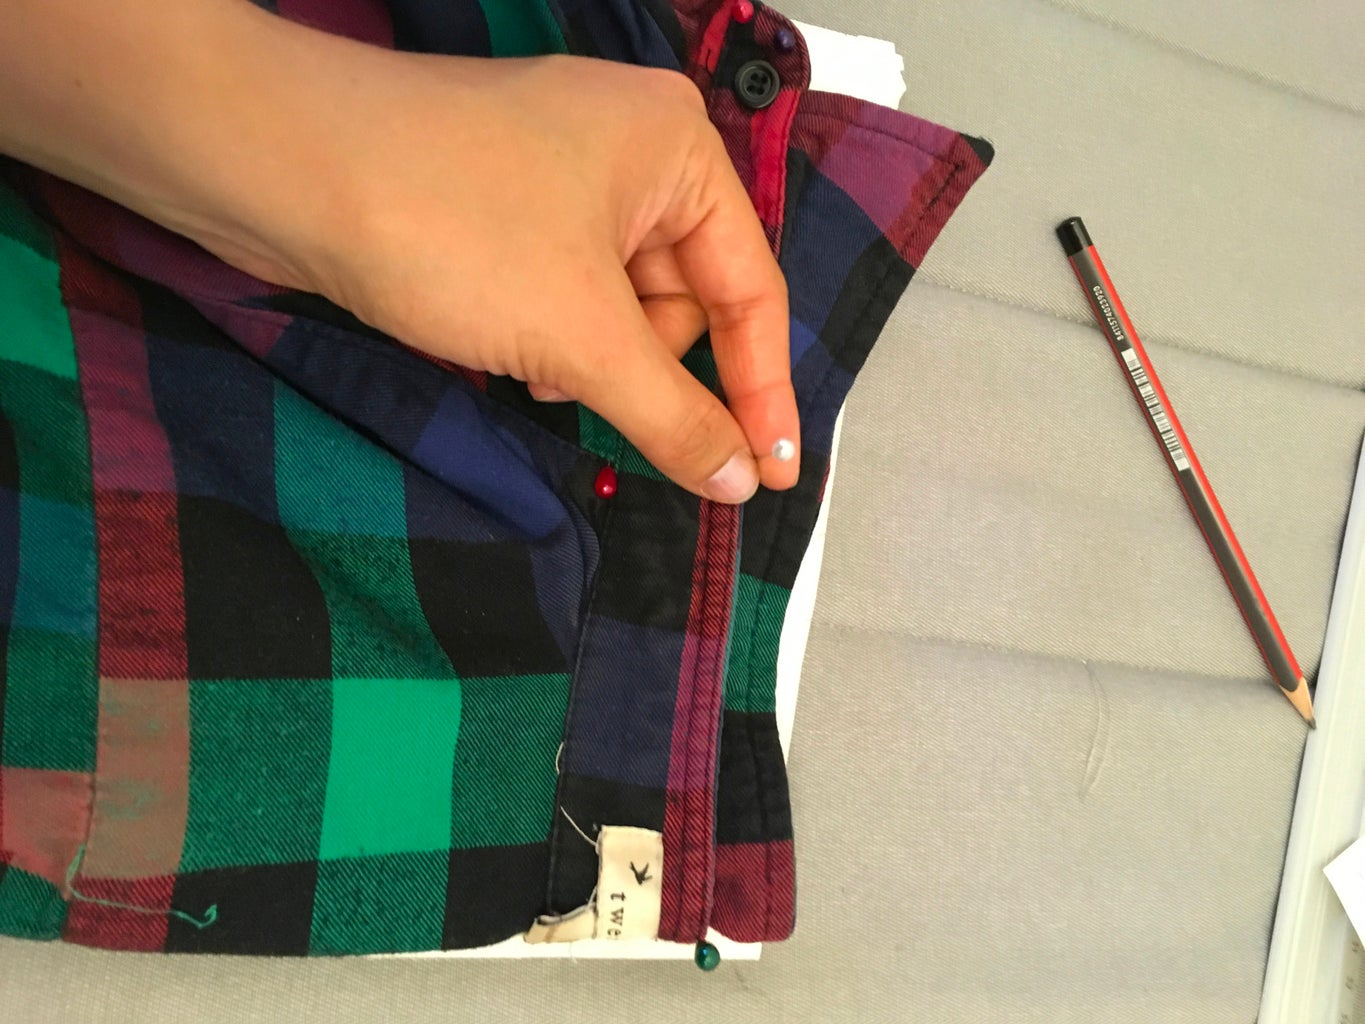 Shirt Pattern-making With Your Own Shirt